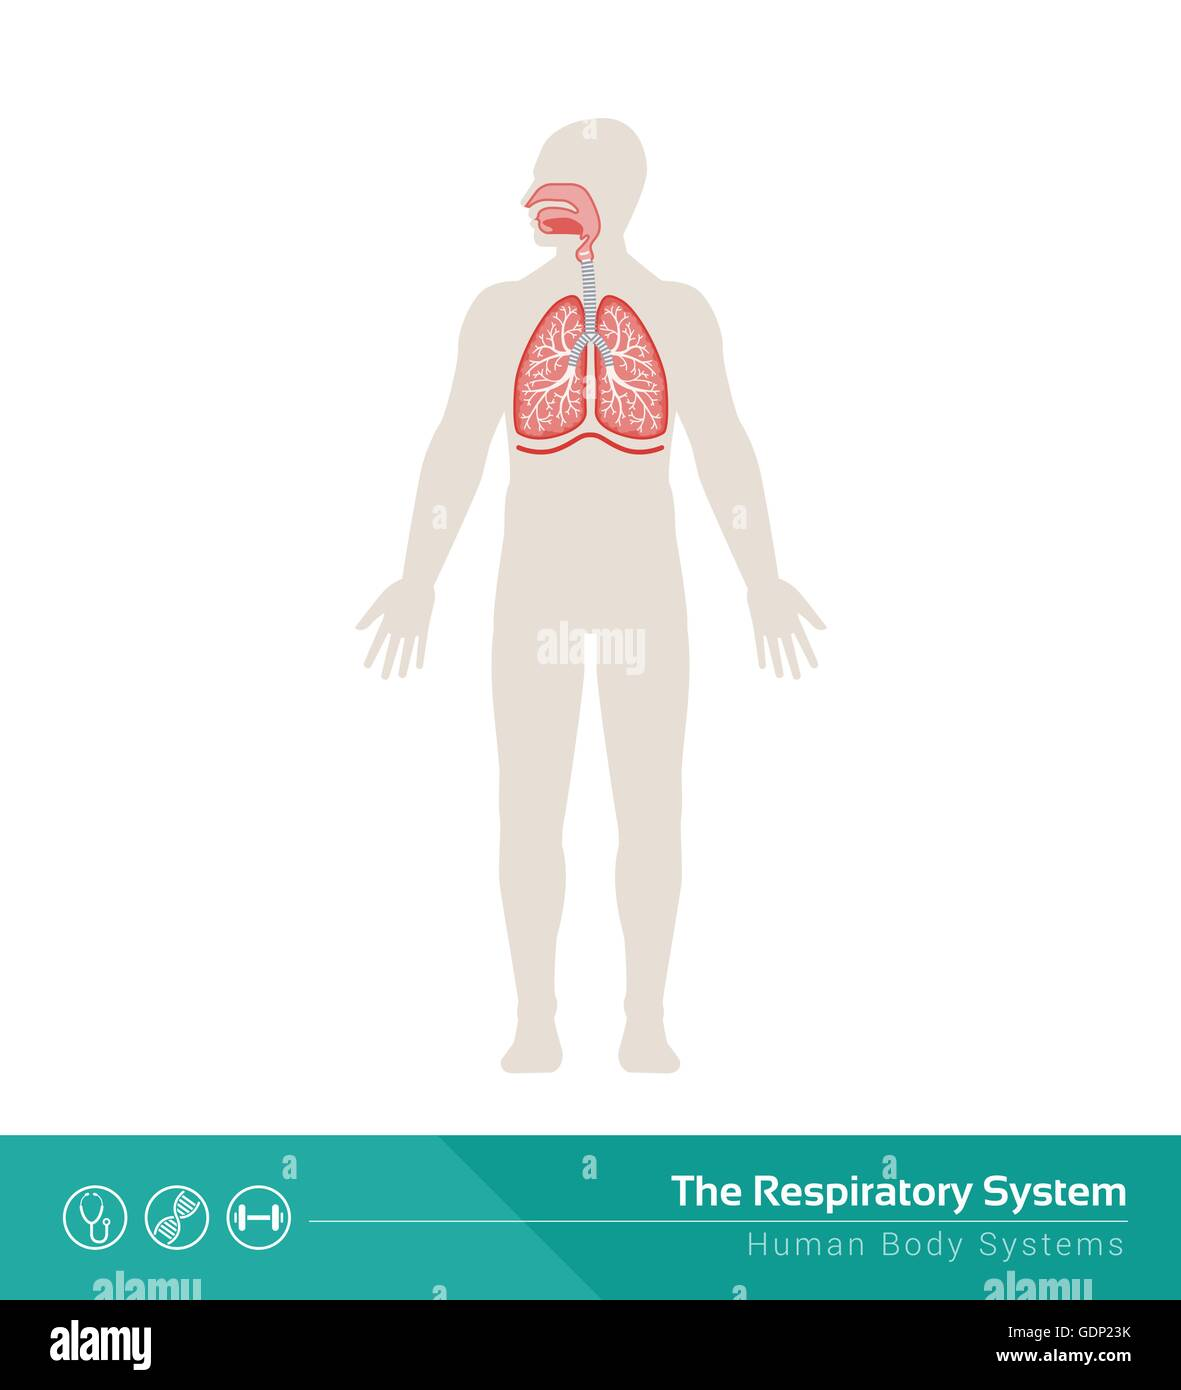 The human respiratory system medical illustration with internal ...